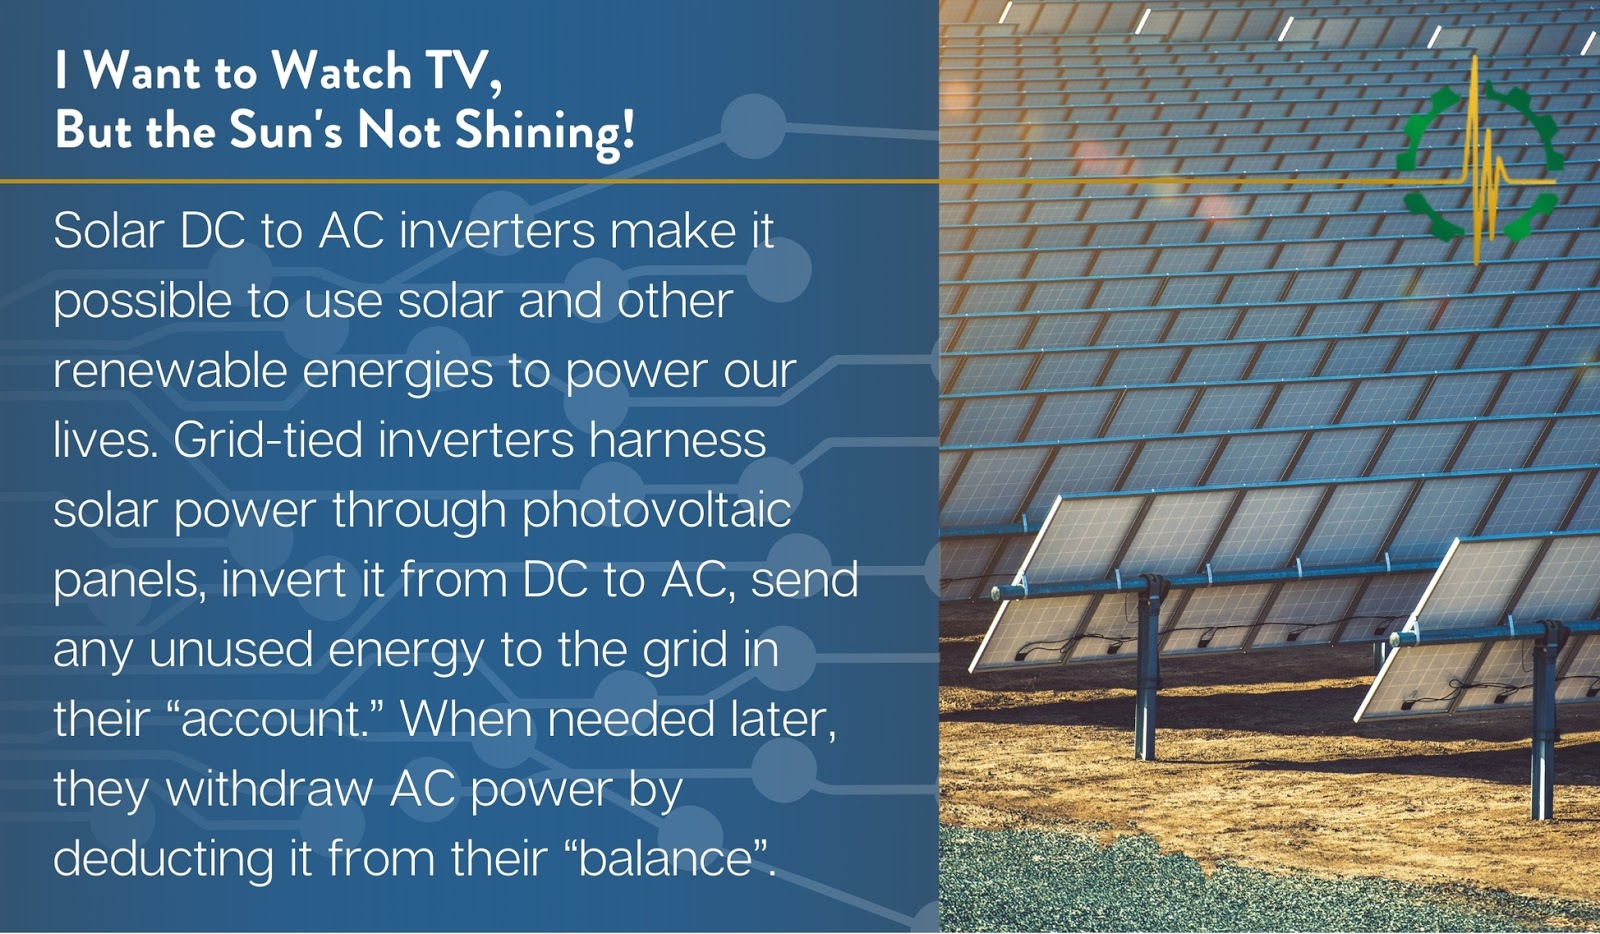 Solar DC to AC inverters make it possible to use renewable energy to power our lives.